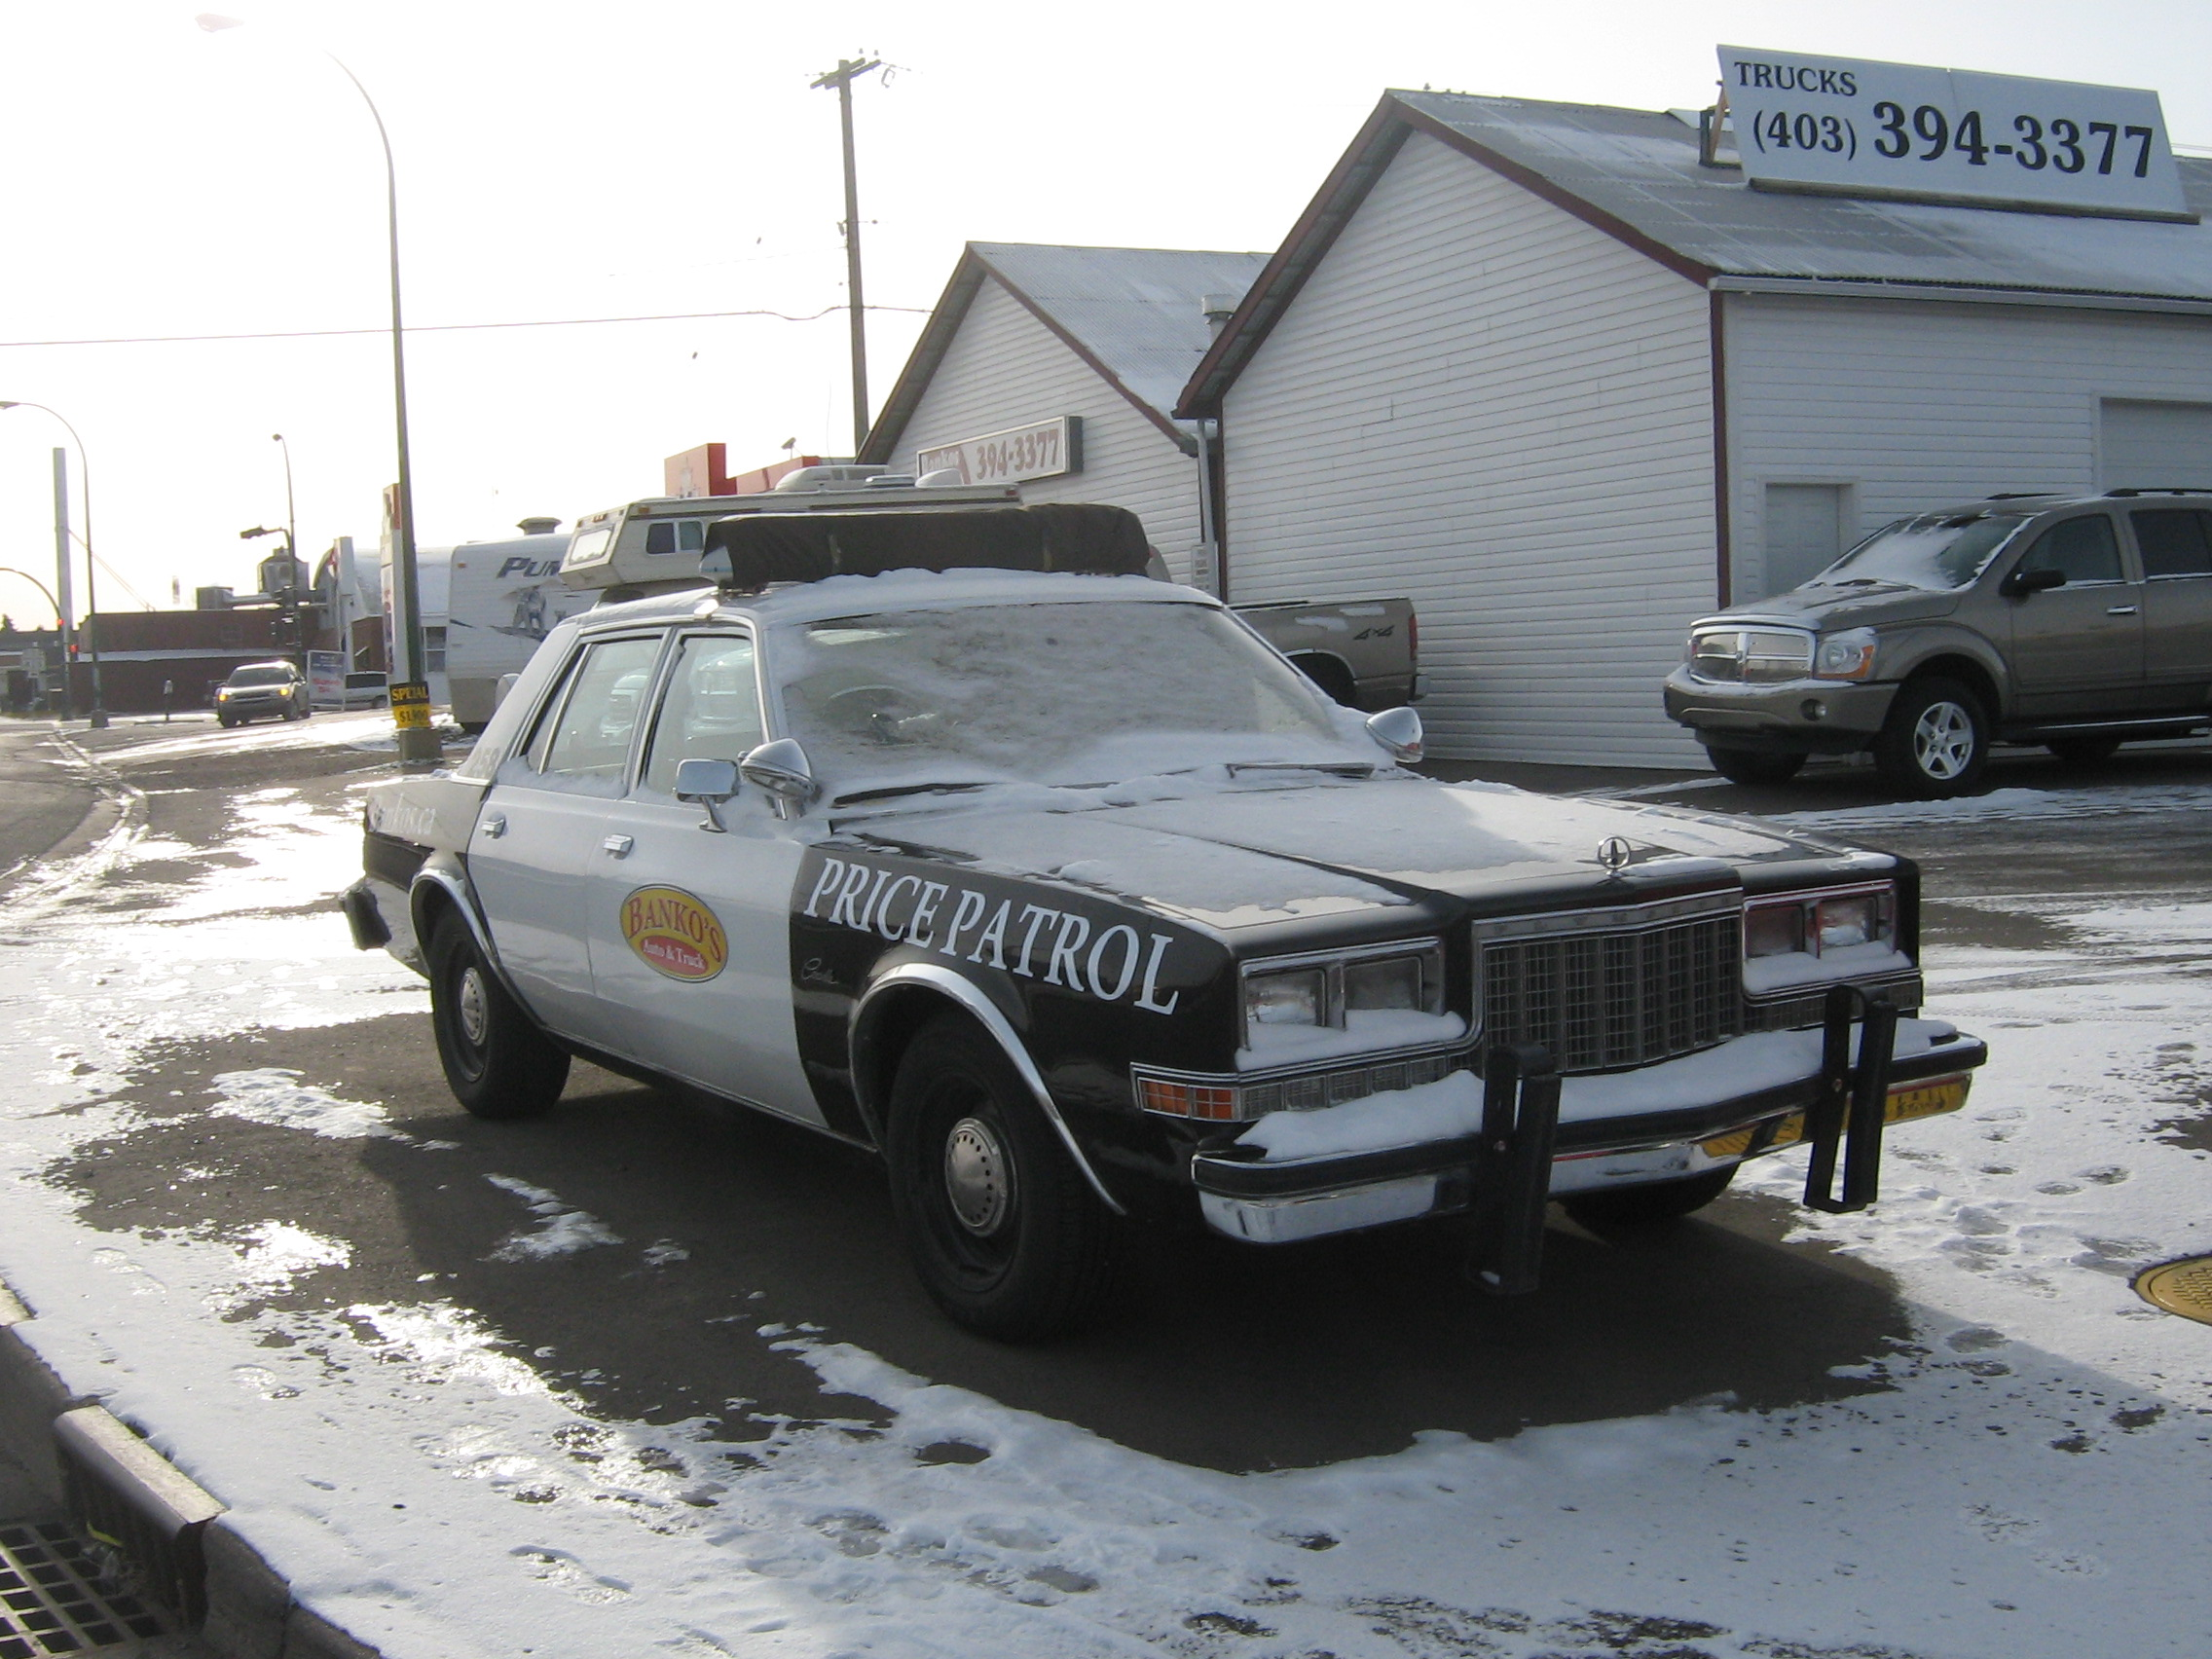 82 plymouth caravelle police car in snow